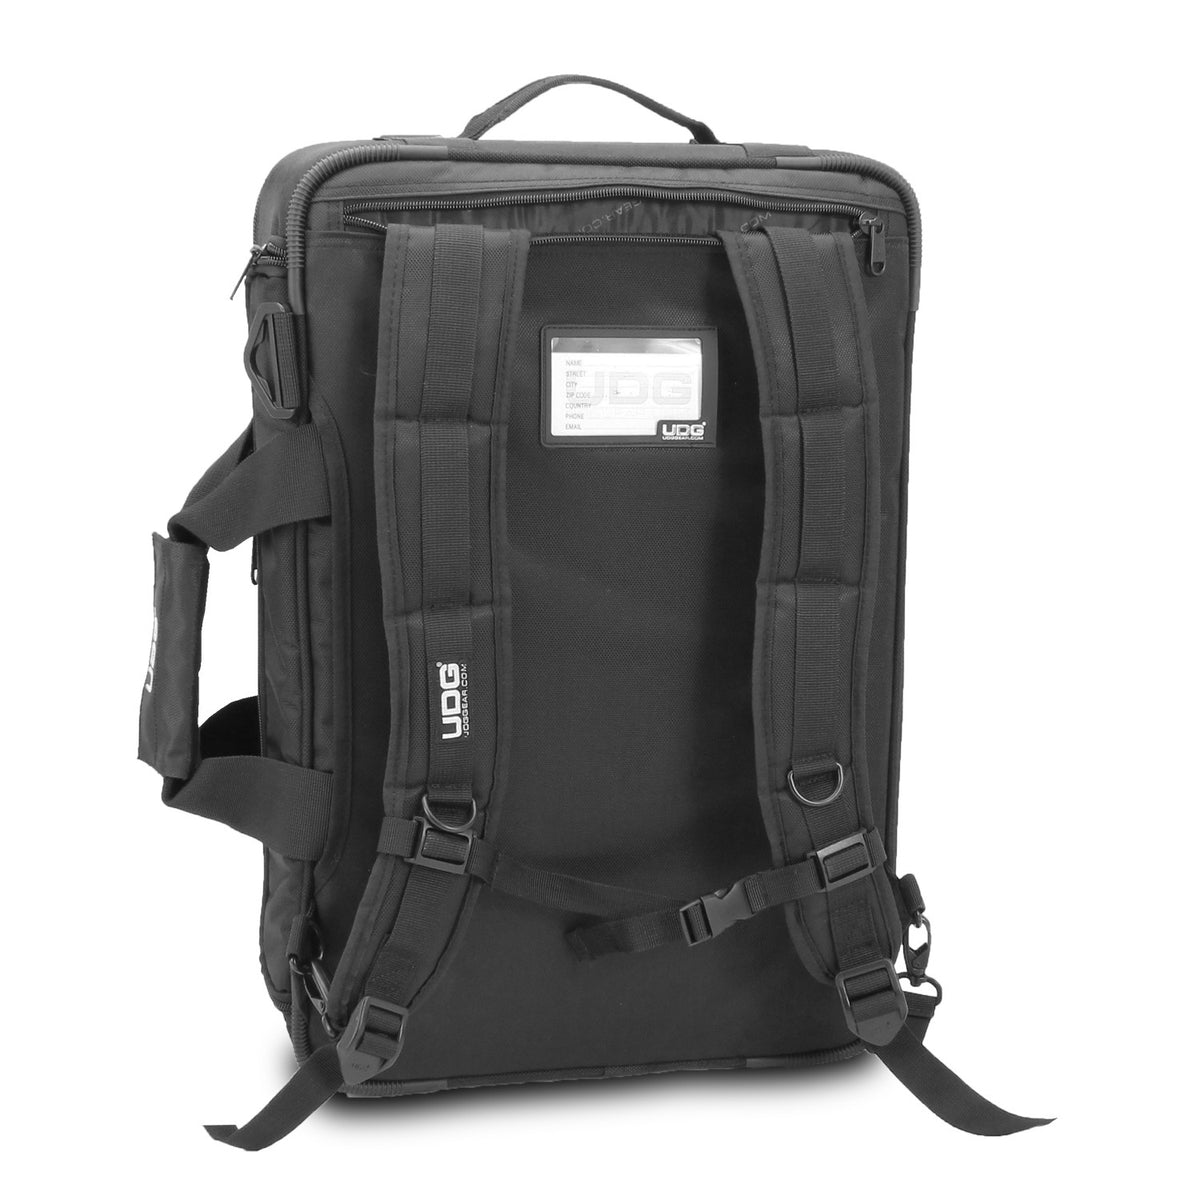 UDG: Ultimate MidiController Backpack Small MK2 - Black / Orange (U9103BL/OR)